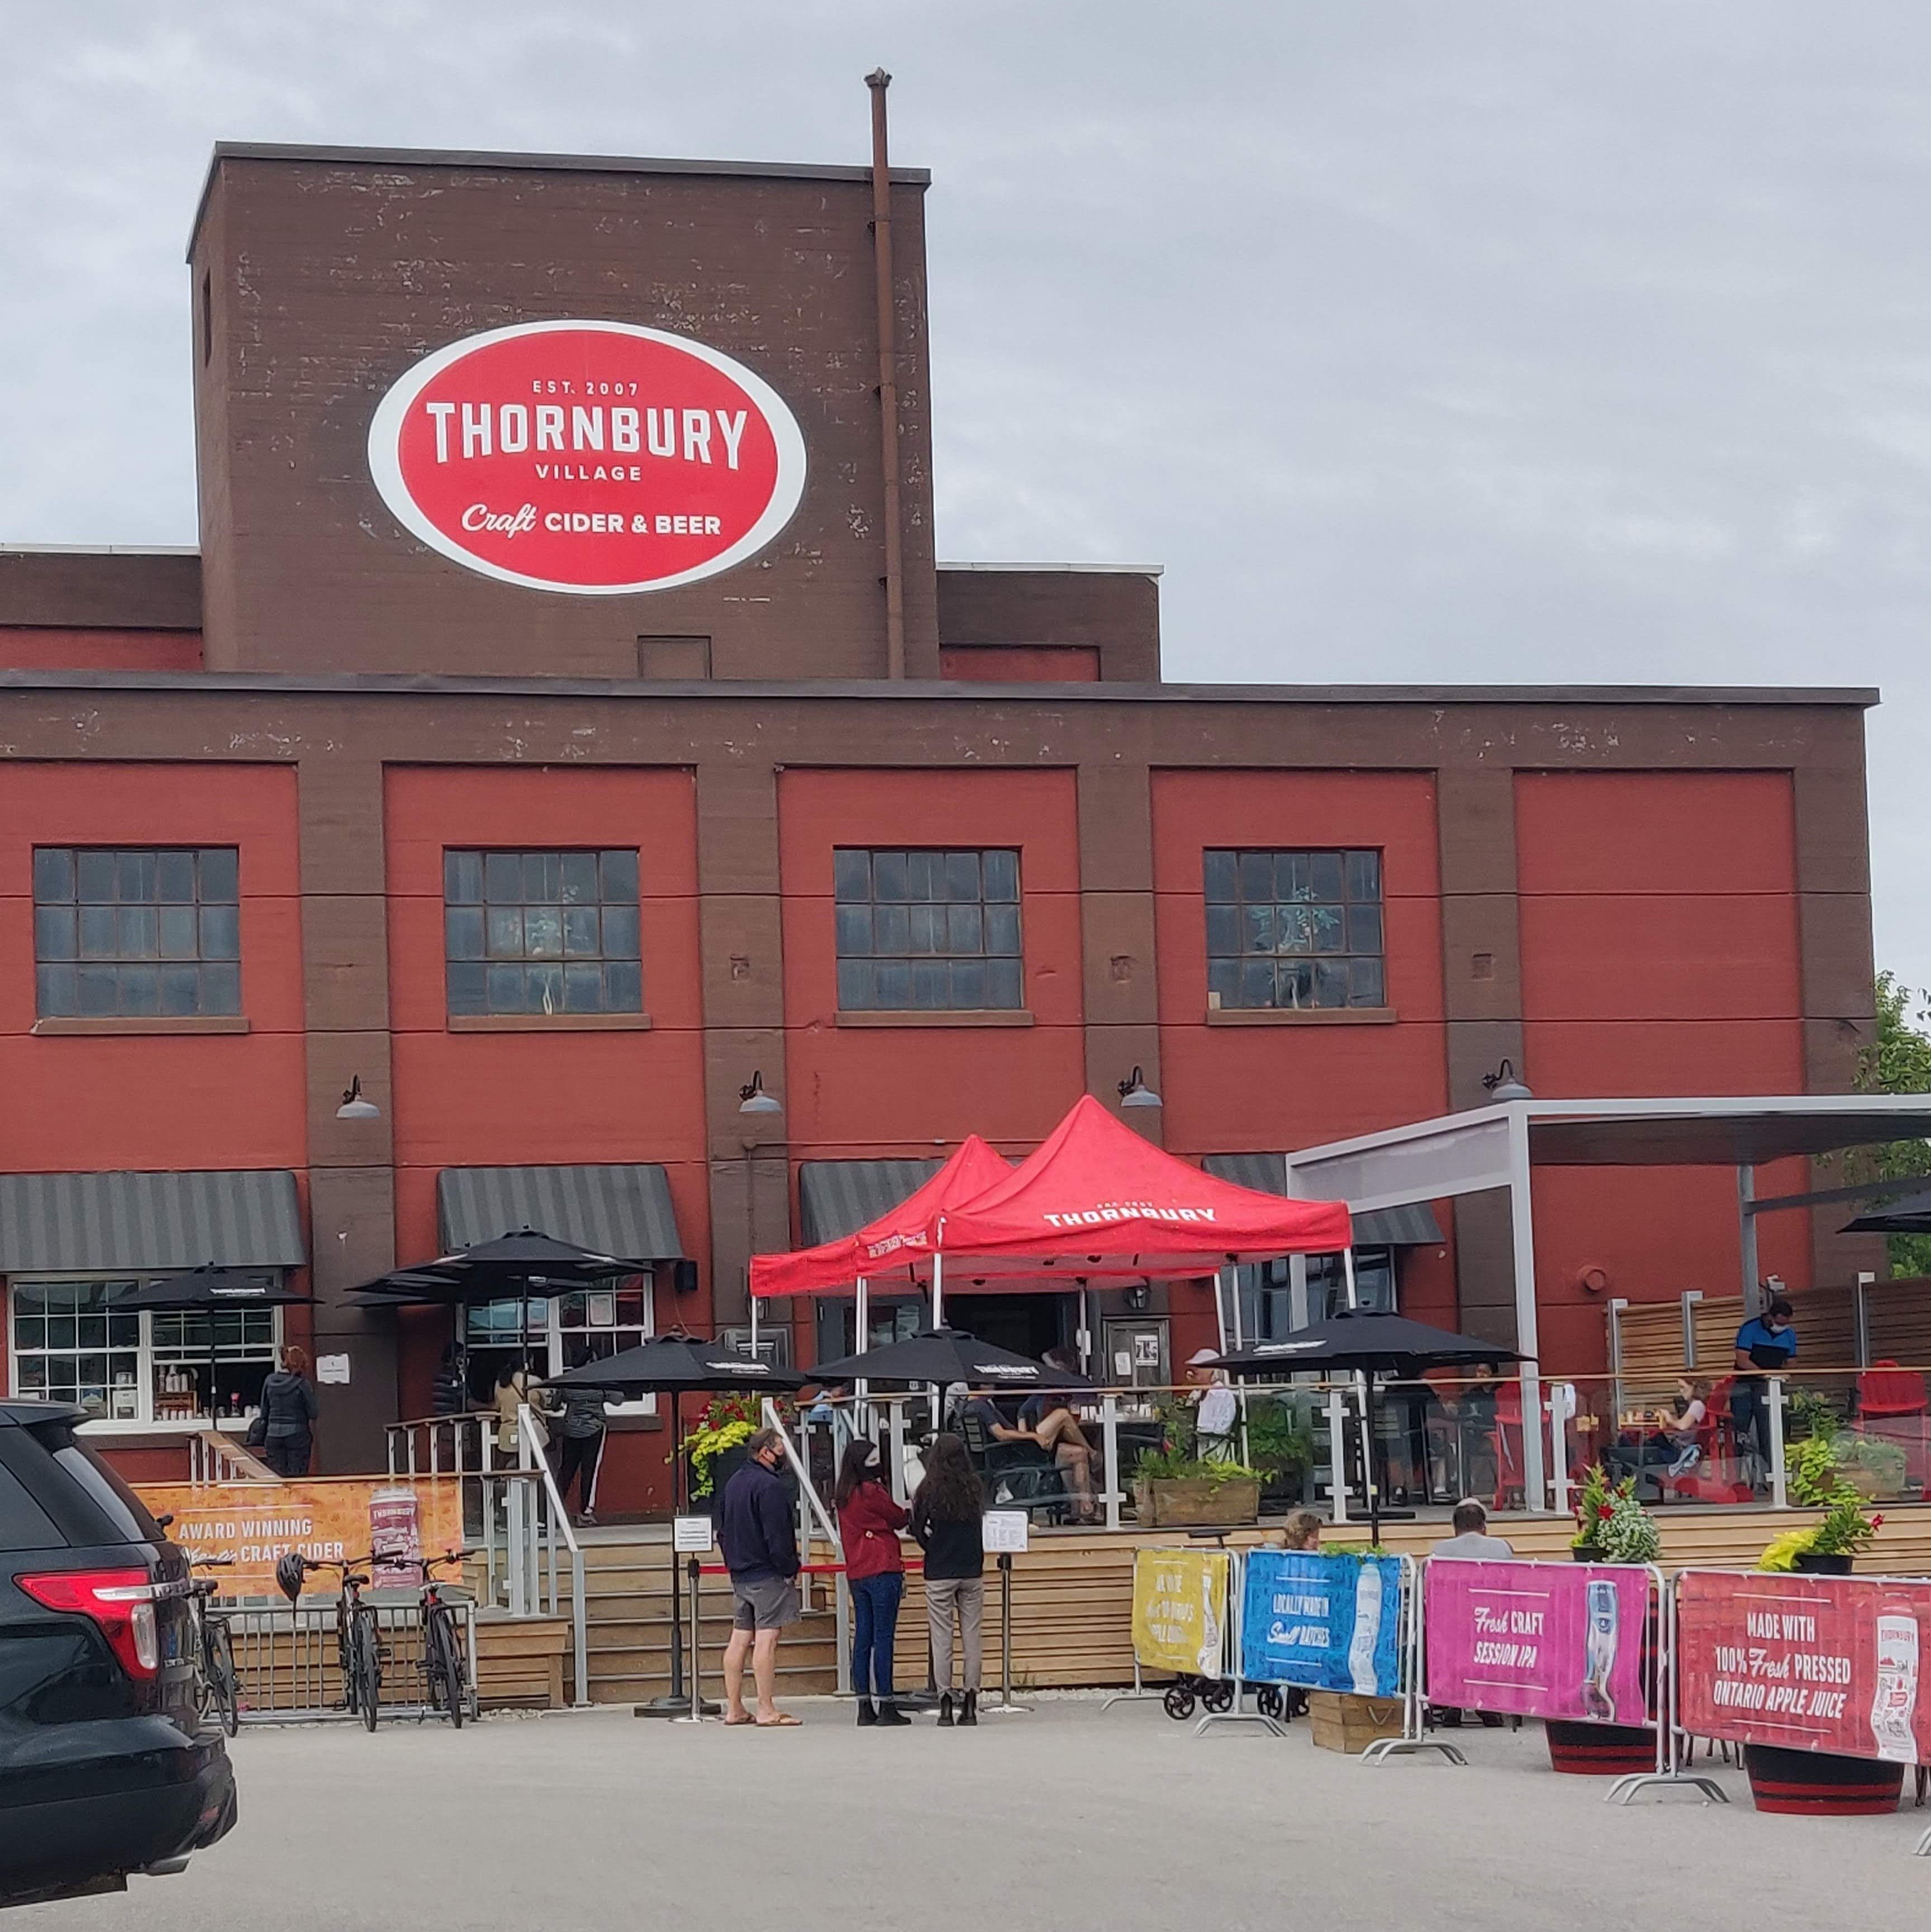 Square brown warehouse-style building with a red oval on a top segment with the Thornbury village Craft cider and beer logo. There are pop-up tents on the patio and a section of the driveway is partitioned off with temporary fencing and large planters for extra seating. There are people seated at the tables, and a few waiting to be seated. There are a few people standing under black awnings ordering bottles to take home.